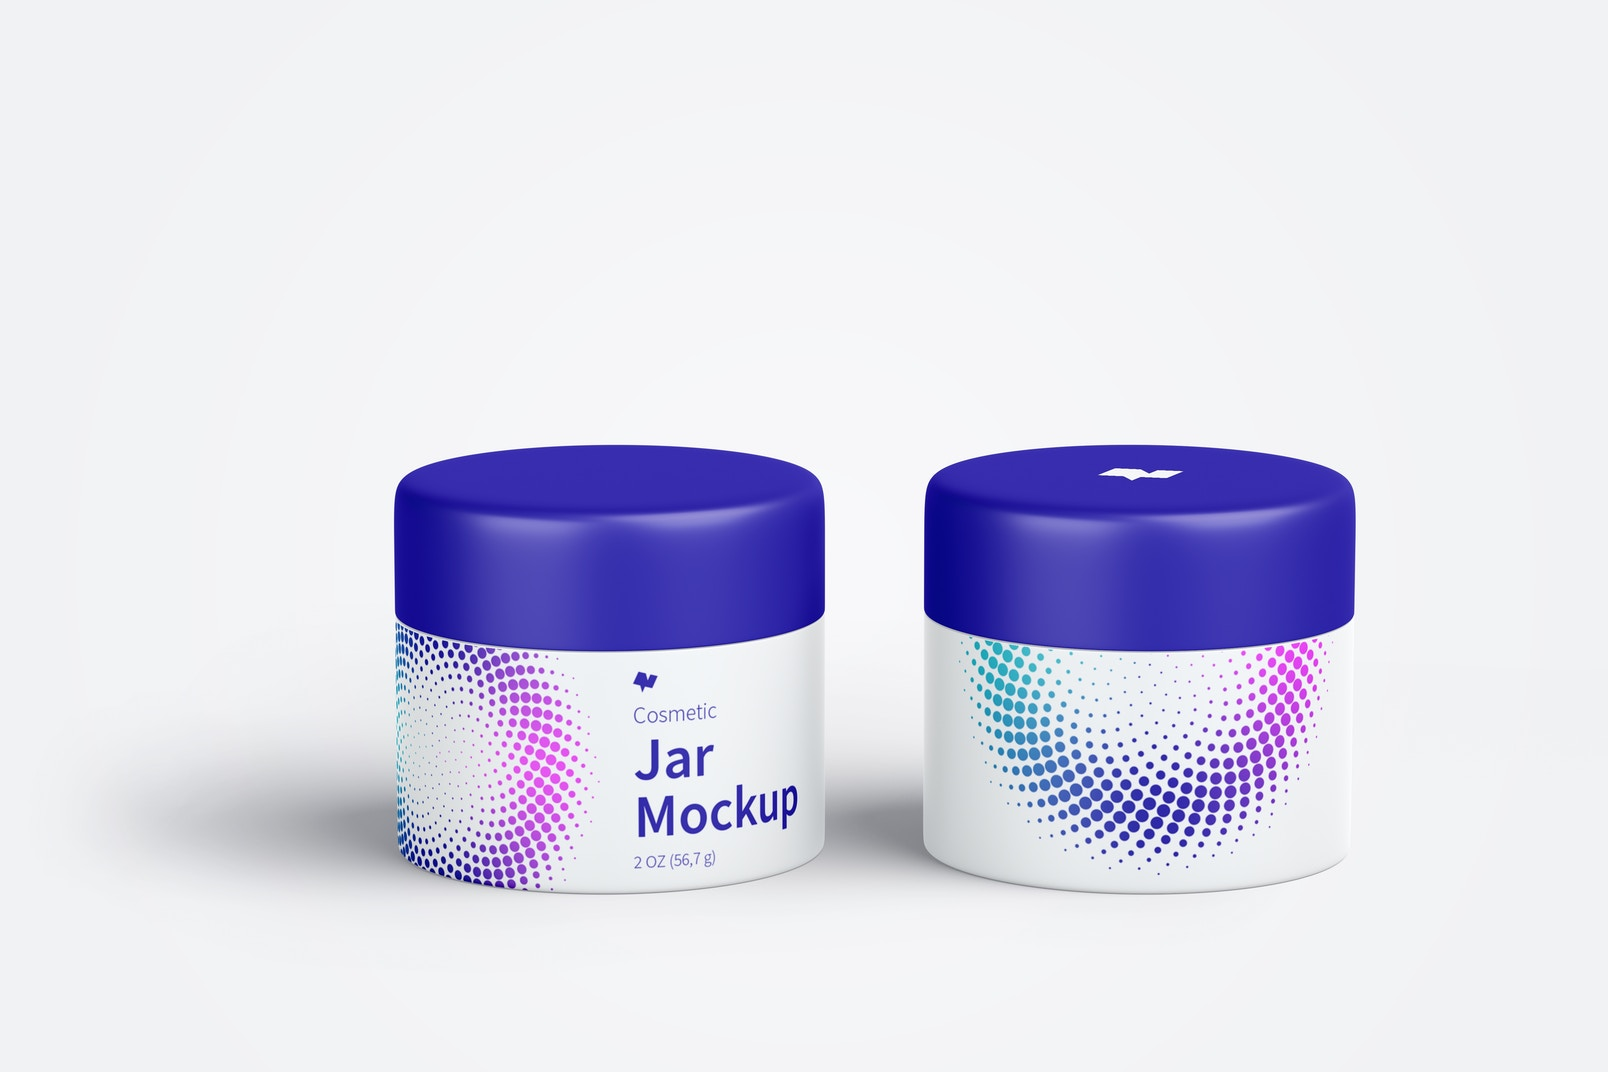 Cosmetic Jar Mockup, Front View 03